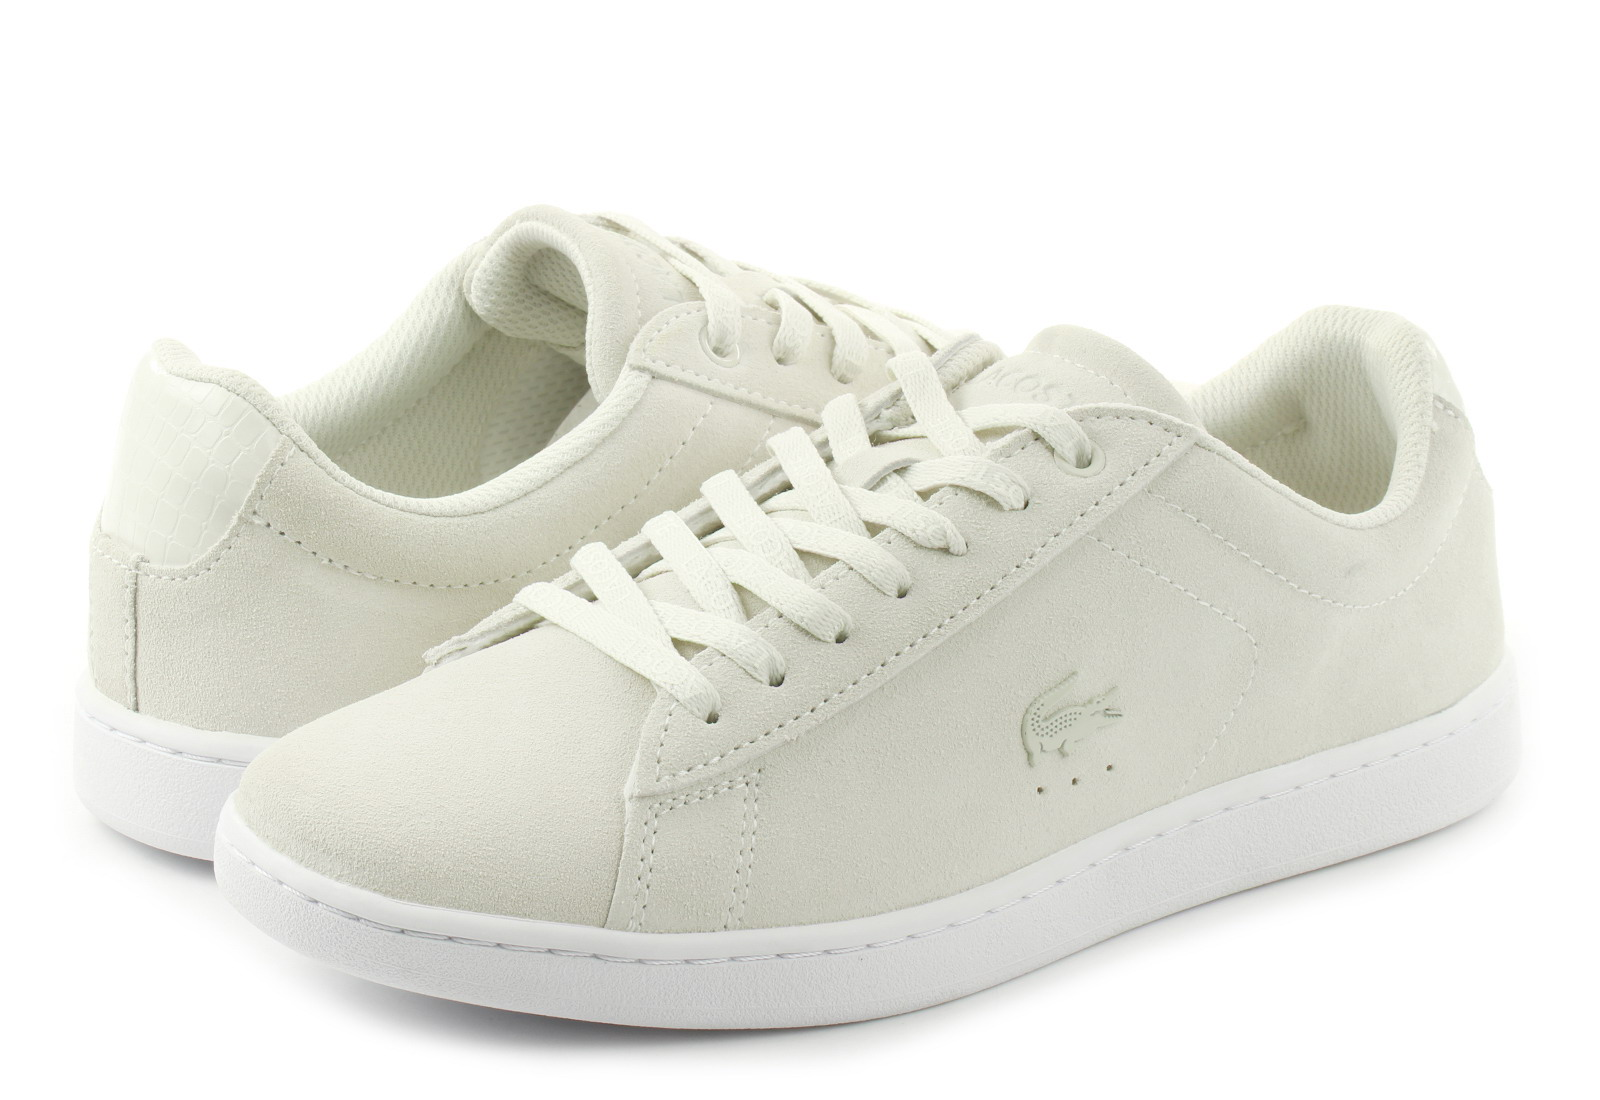 Lacoste Cipő - Carnaby Evo - 184SPW0045-098 - Office Shoes ... 43d7eecec4